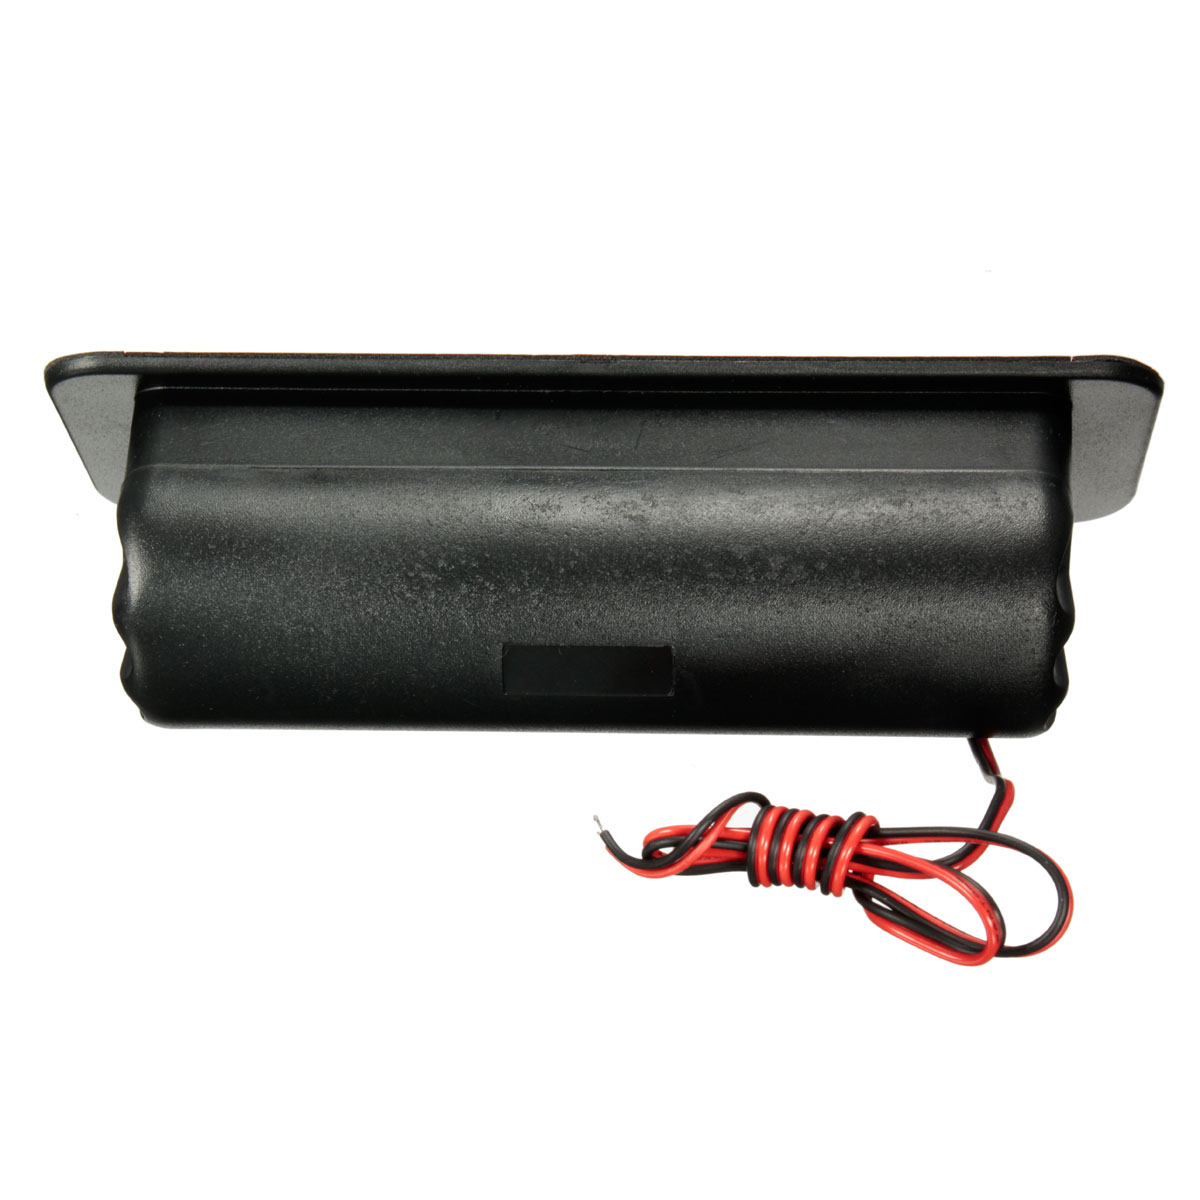 Murray S Buick Canada Wide Clearance: 12V Car 5 LED Warning Rear Tail 3rd Third Brake Stop Light